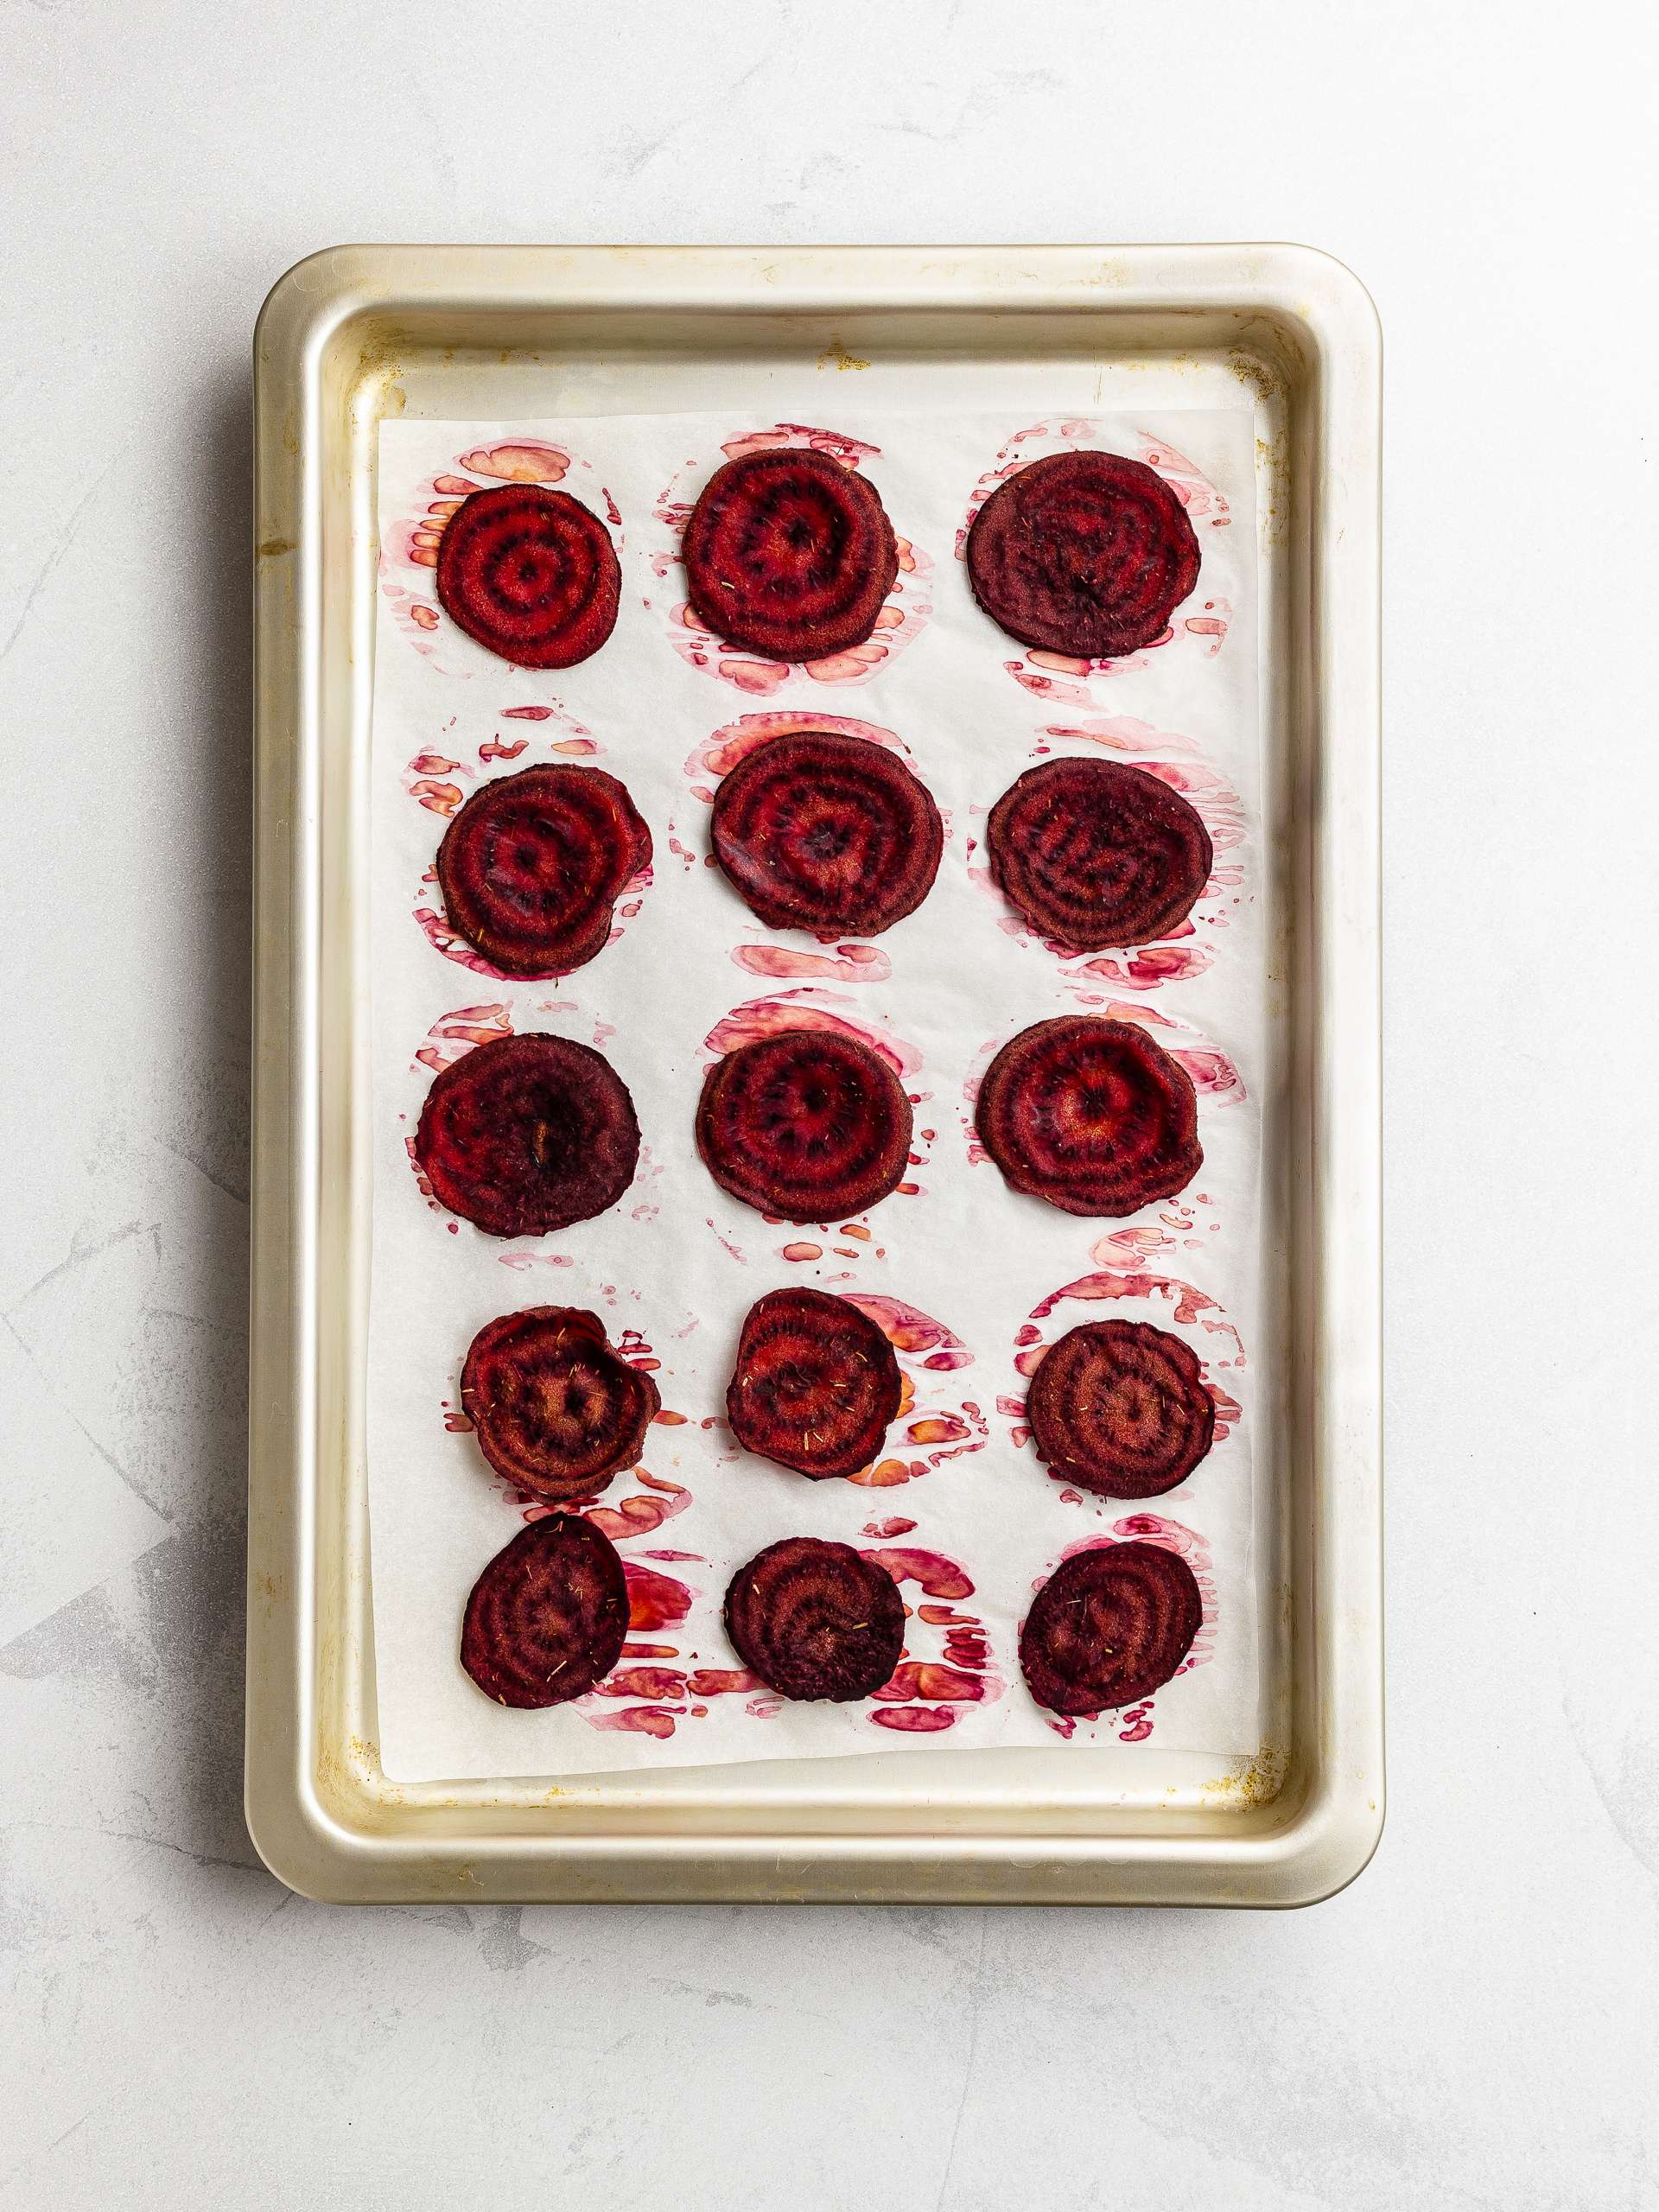 baked beet chips on a tray